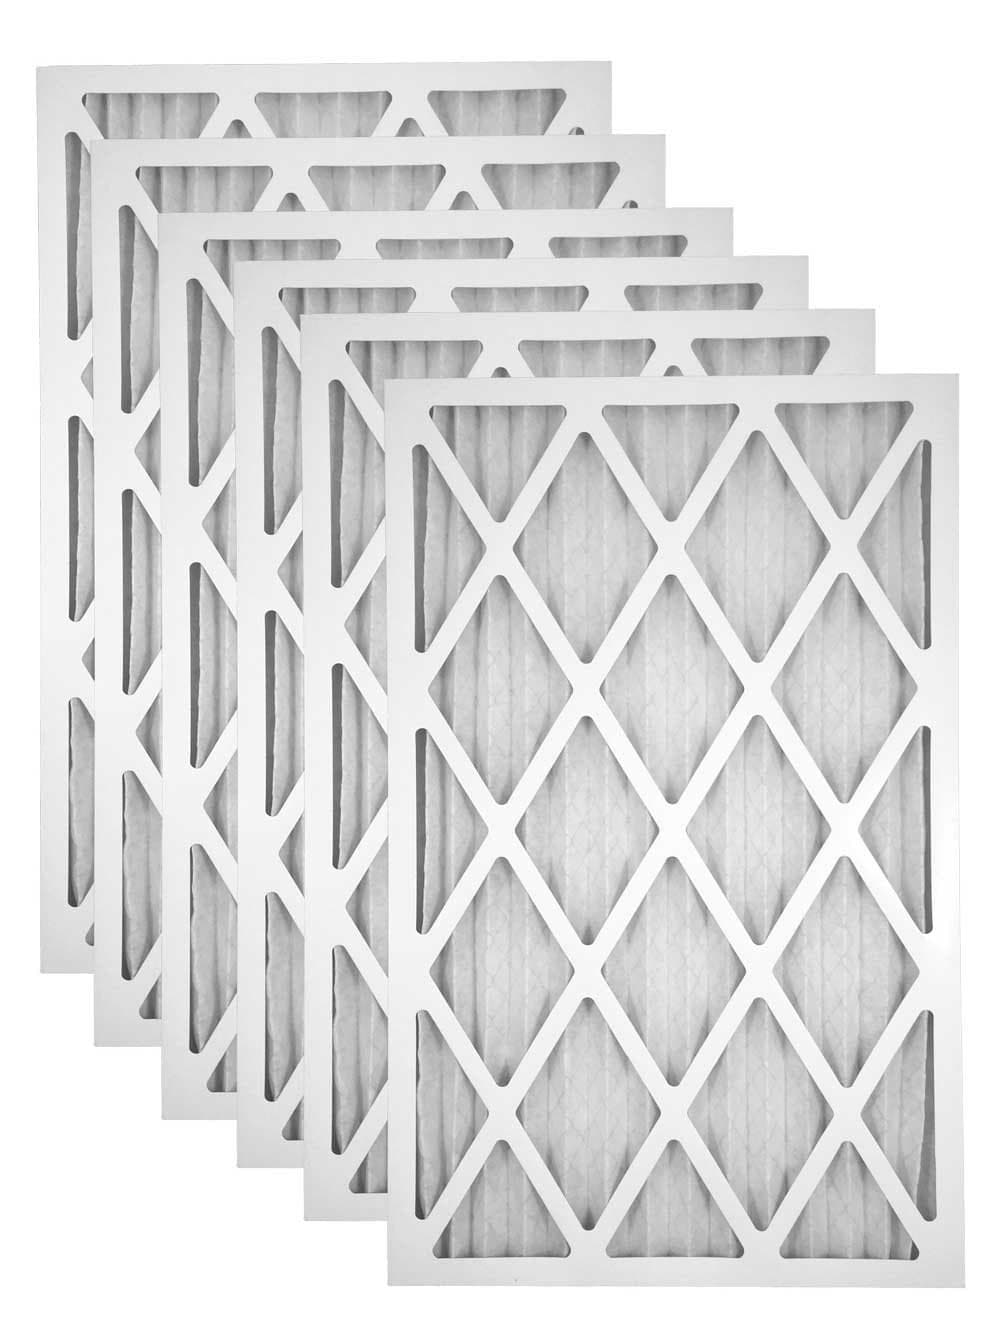 14x18x1 Merv 8 AC Furnace Filter - Case of 6